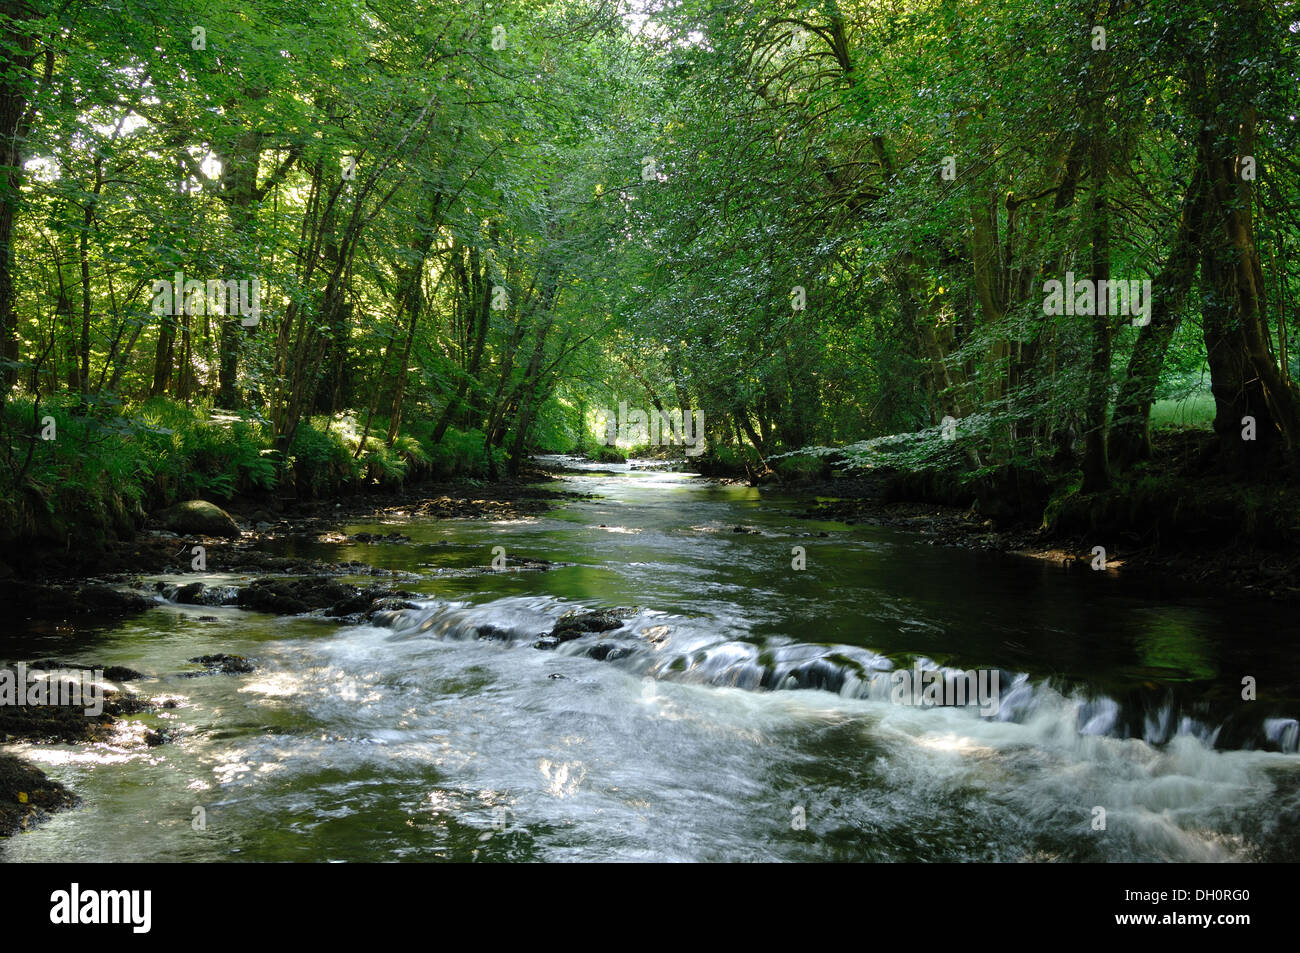 Fingle Wood and river teign near Mortonhampstead Dartmoor UK. Bought by the Woodland Trust in 2013 for restoration. Teign Valley - Stock Image